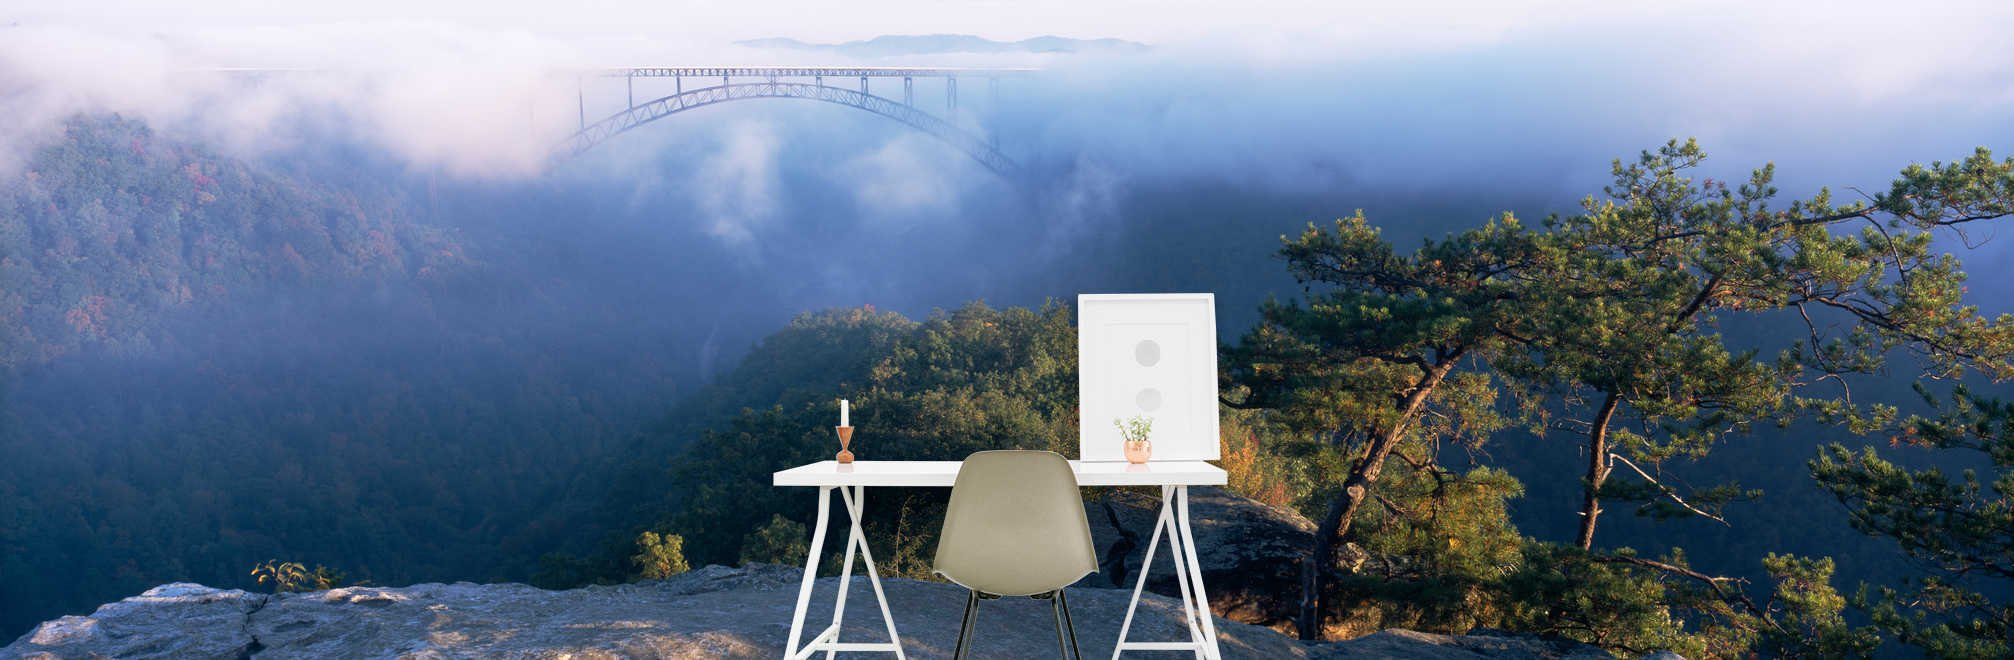 Clouds over a bridge, New River Gorge Bridge, Fayetteville, West Virginia, USA on Smooth Peel & Stick Decal Wallpaper by CustomWallpaper.com